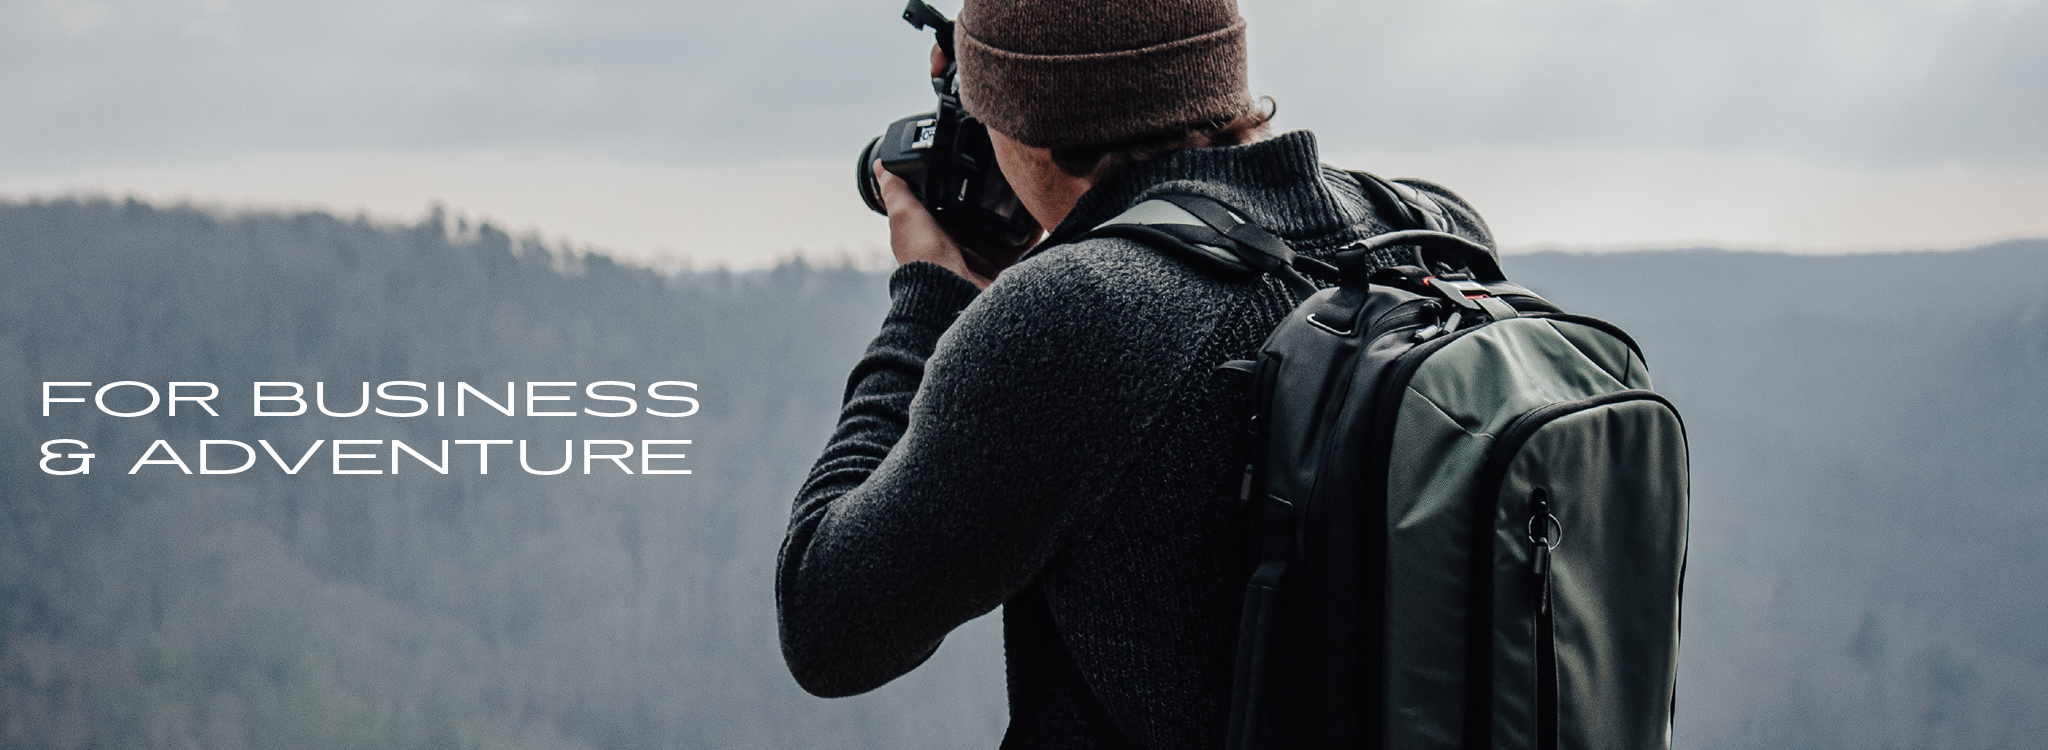 Outdoor business backpack